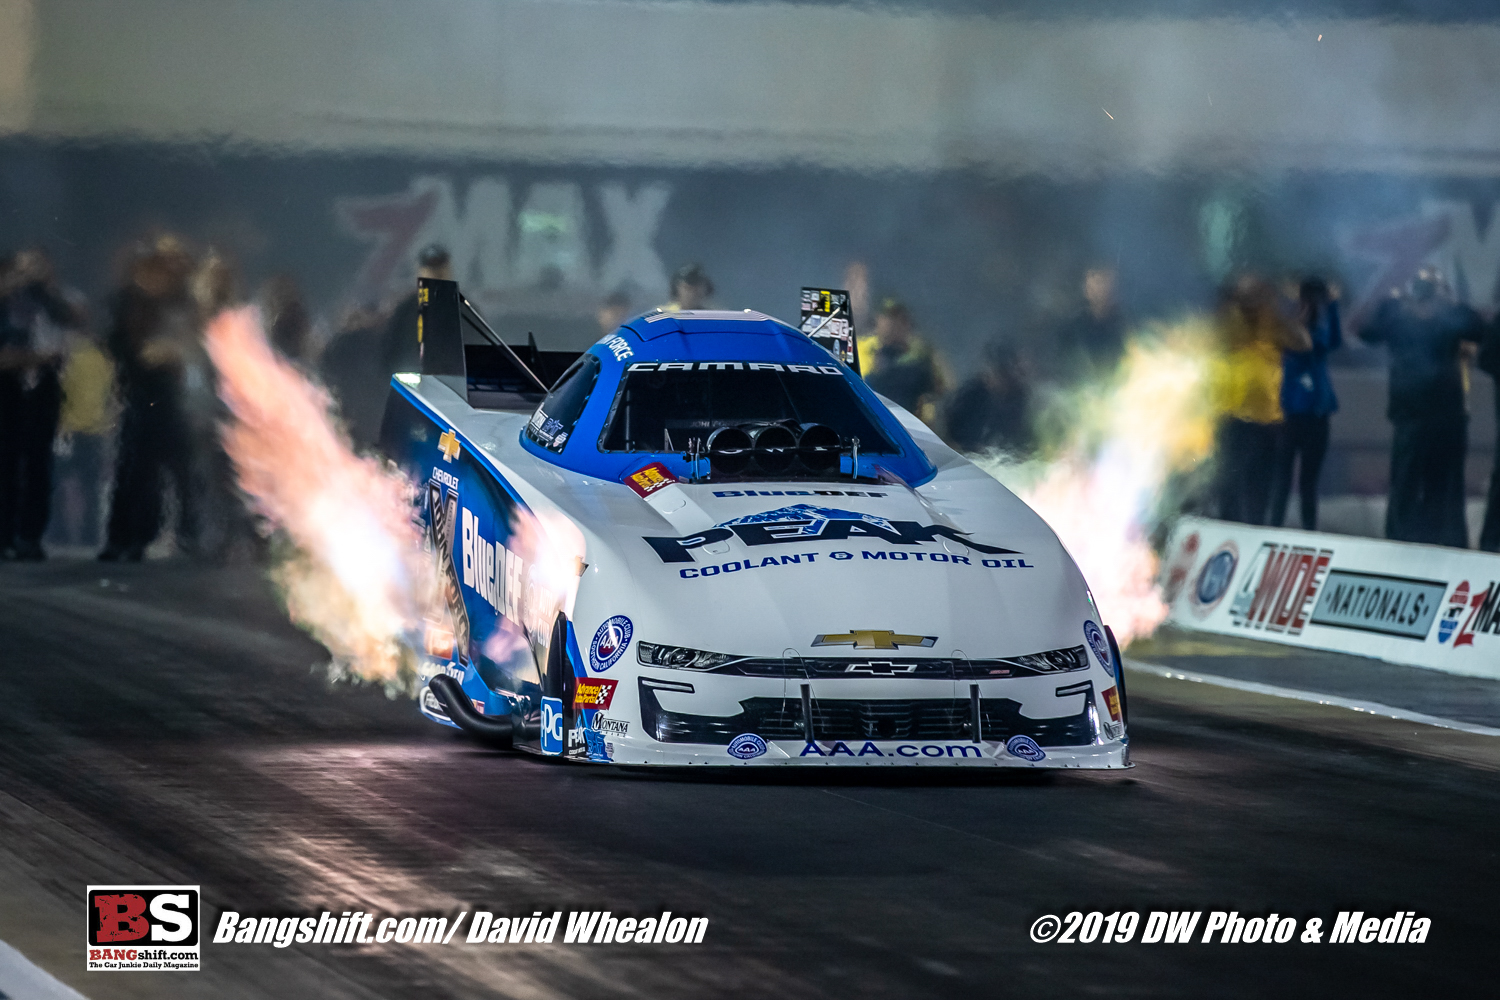 NGK NHRA 4-Wide Nationals Nitro Photos: Flames Up, Pig Piles, Tire Smoke, Action and More!